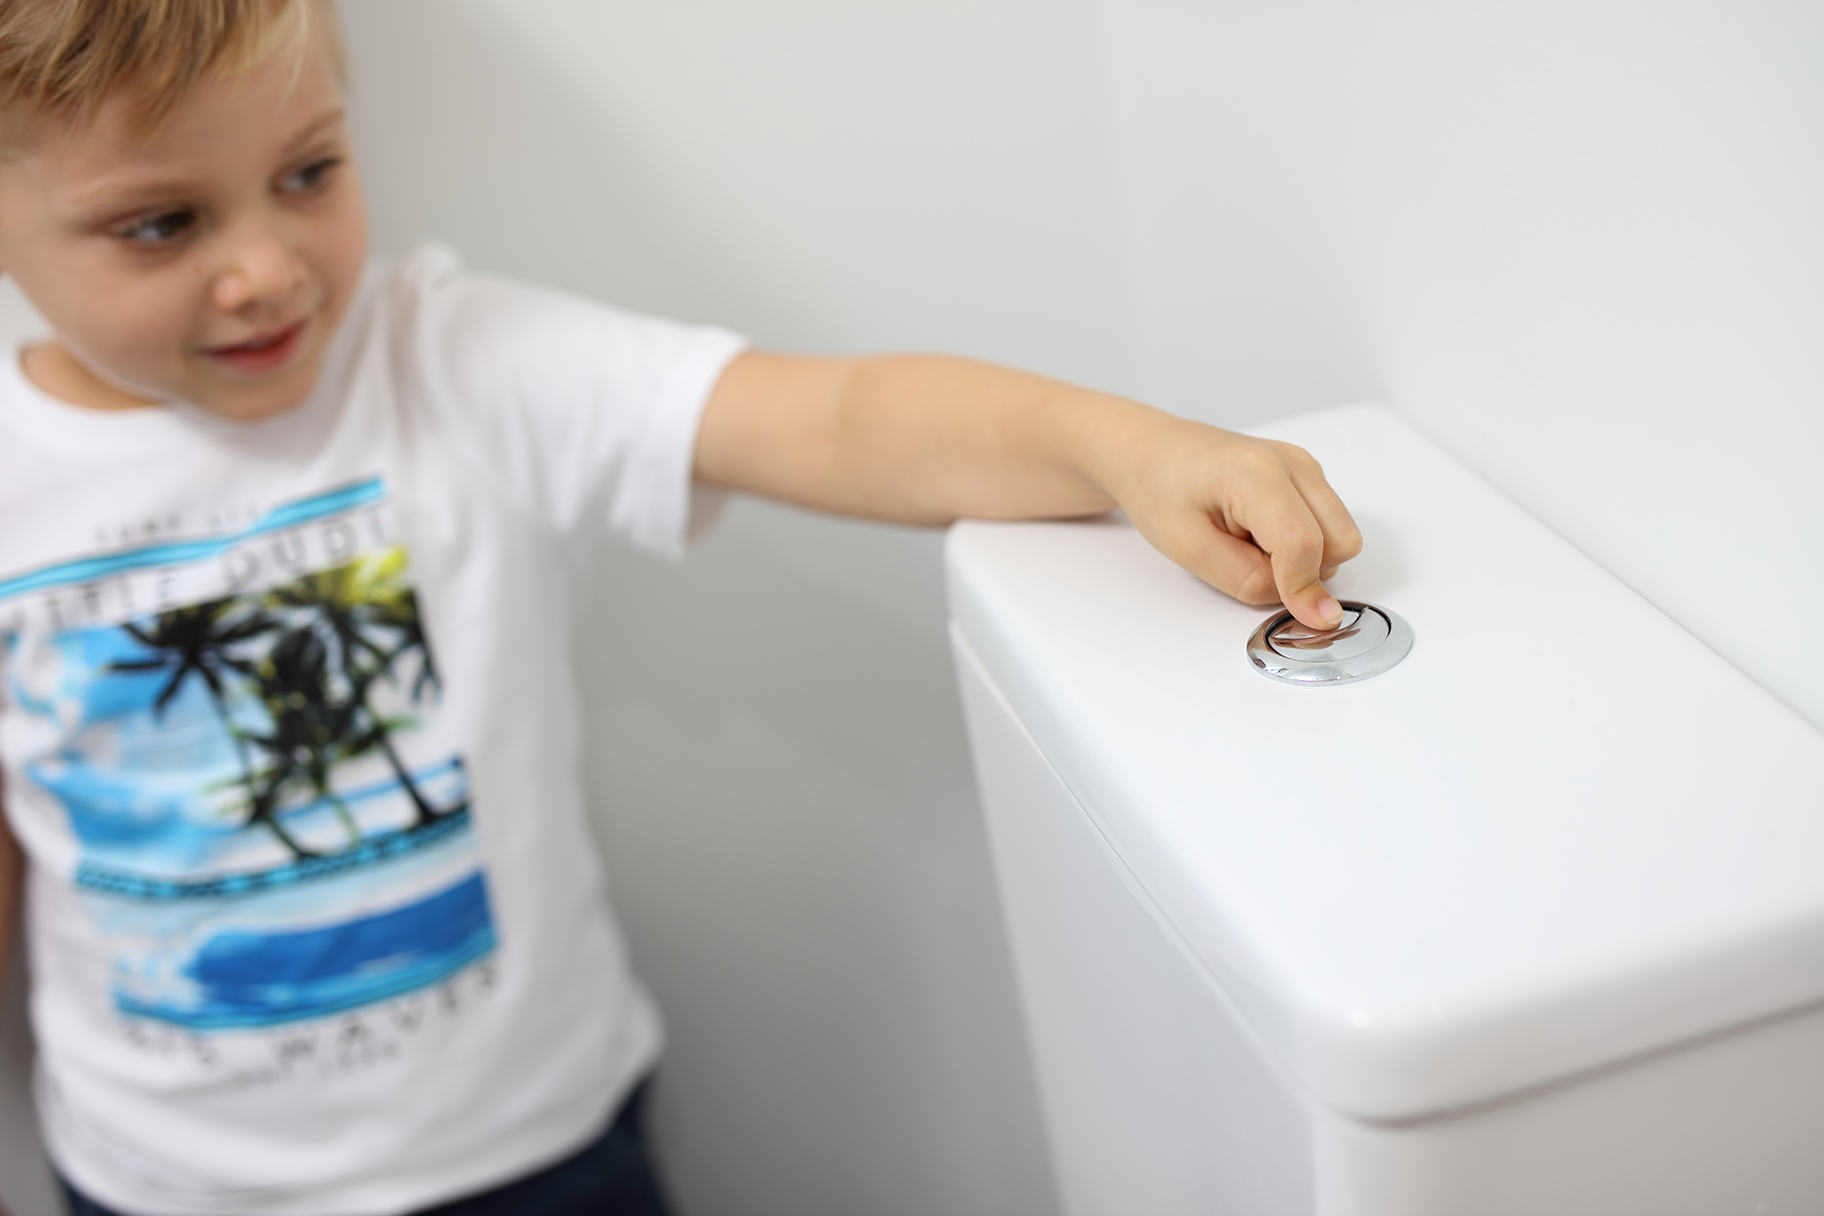 Young boy flushing toilet in bathroom of residential house